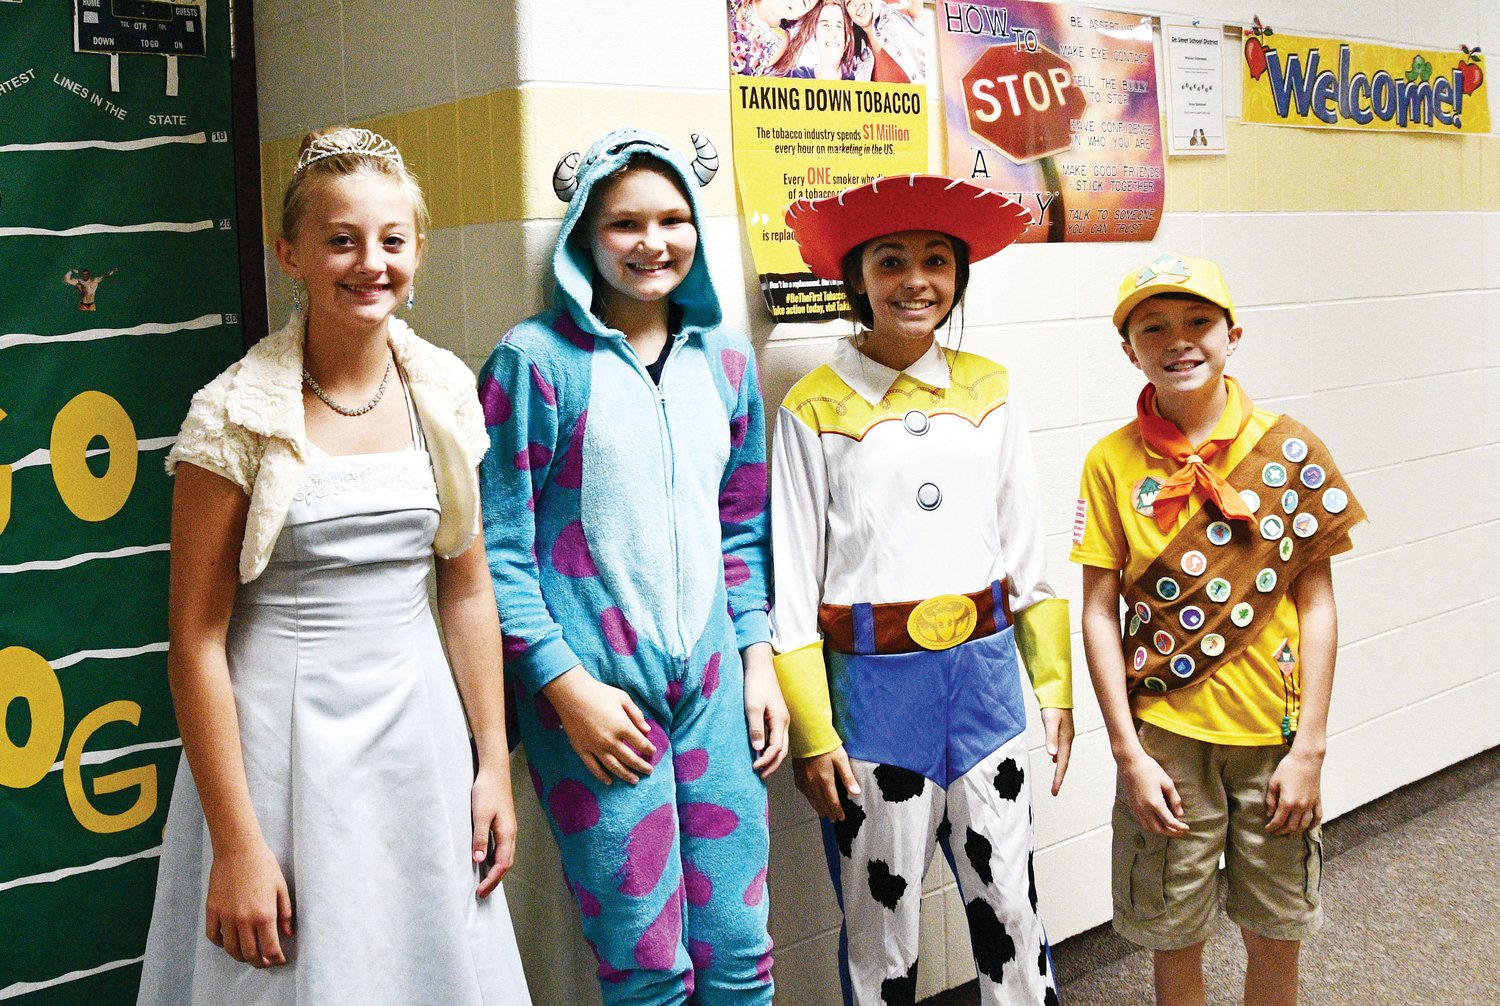 Brooklyn Coughlin, left, Audi Currier, Megan Dylla and Danny Sudenga dress up as characters from Disney on Disney Day.